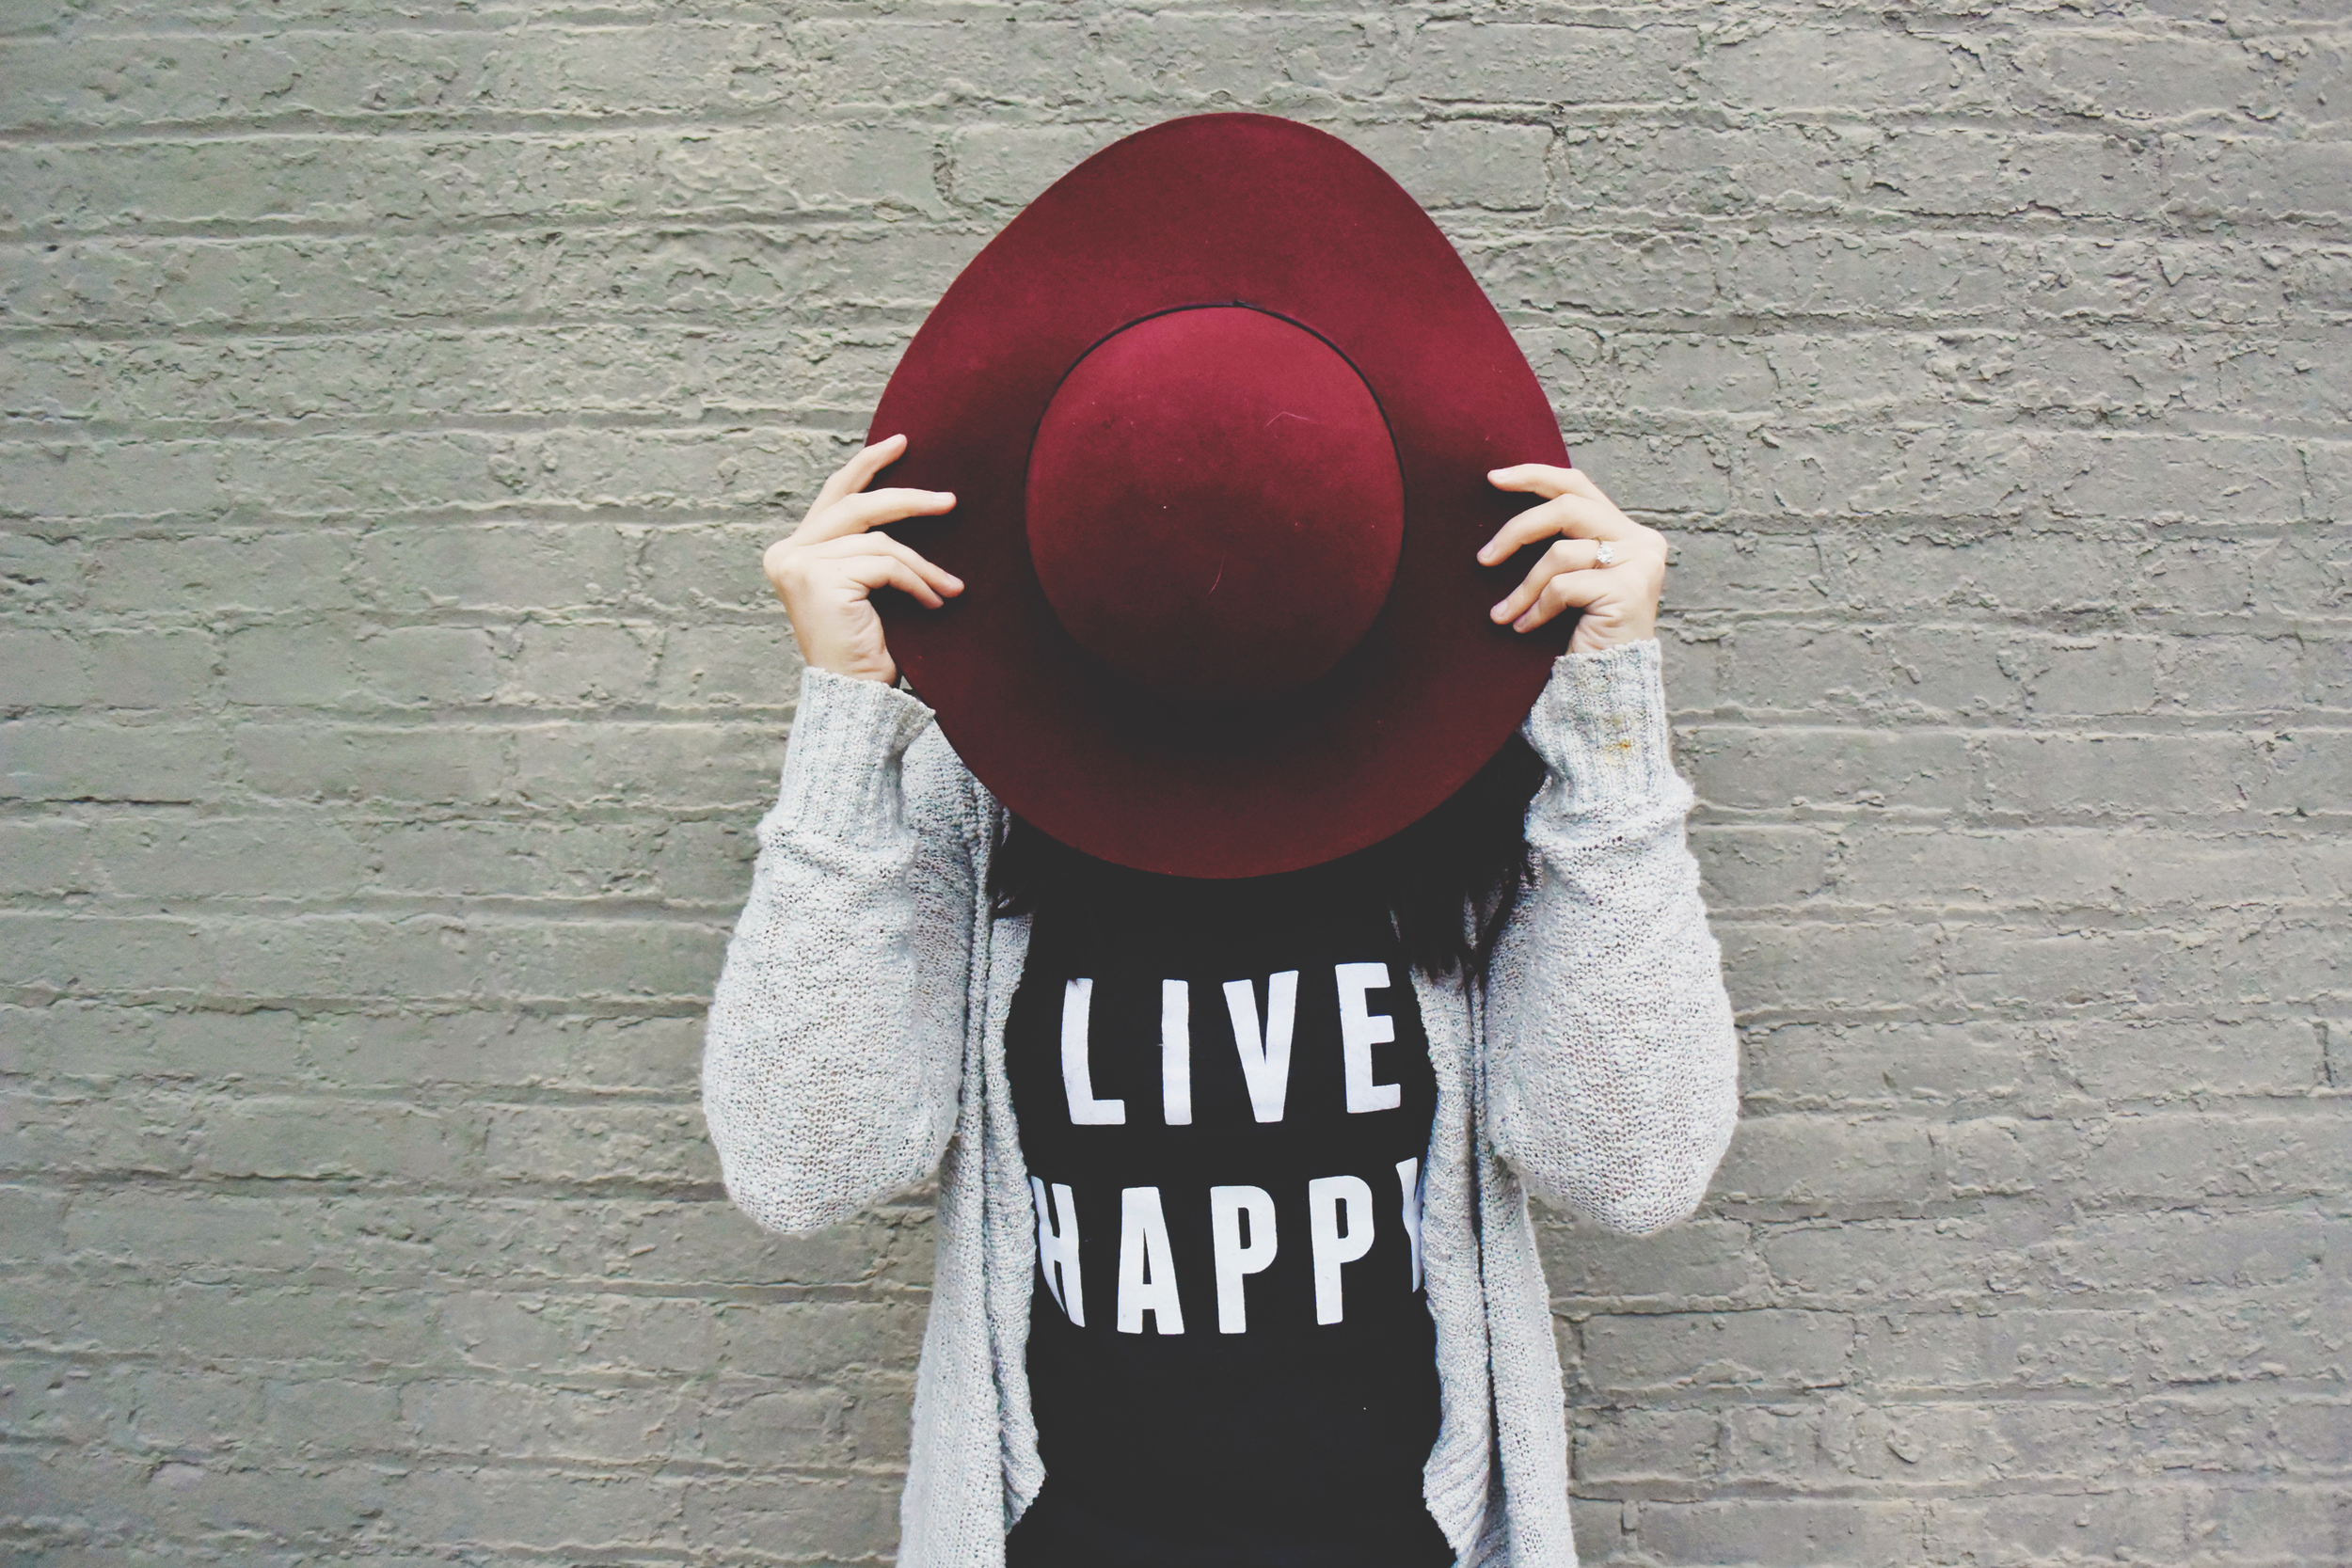 Live Happy t-shirt from chelceytate.com